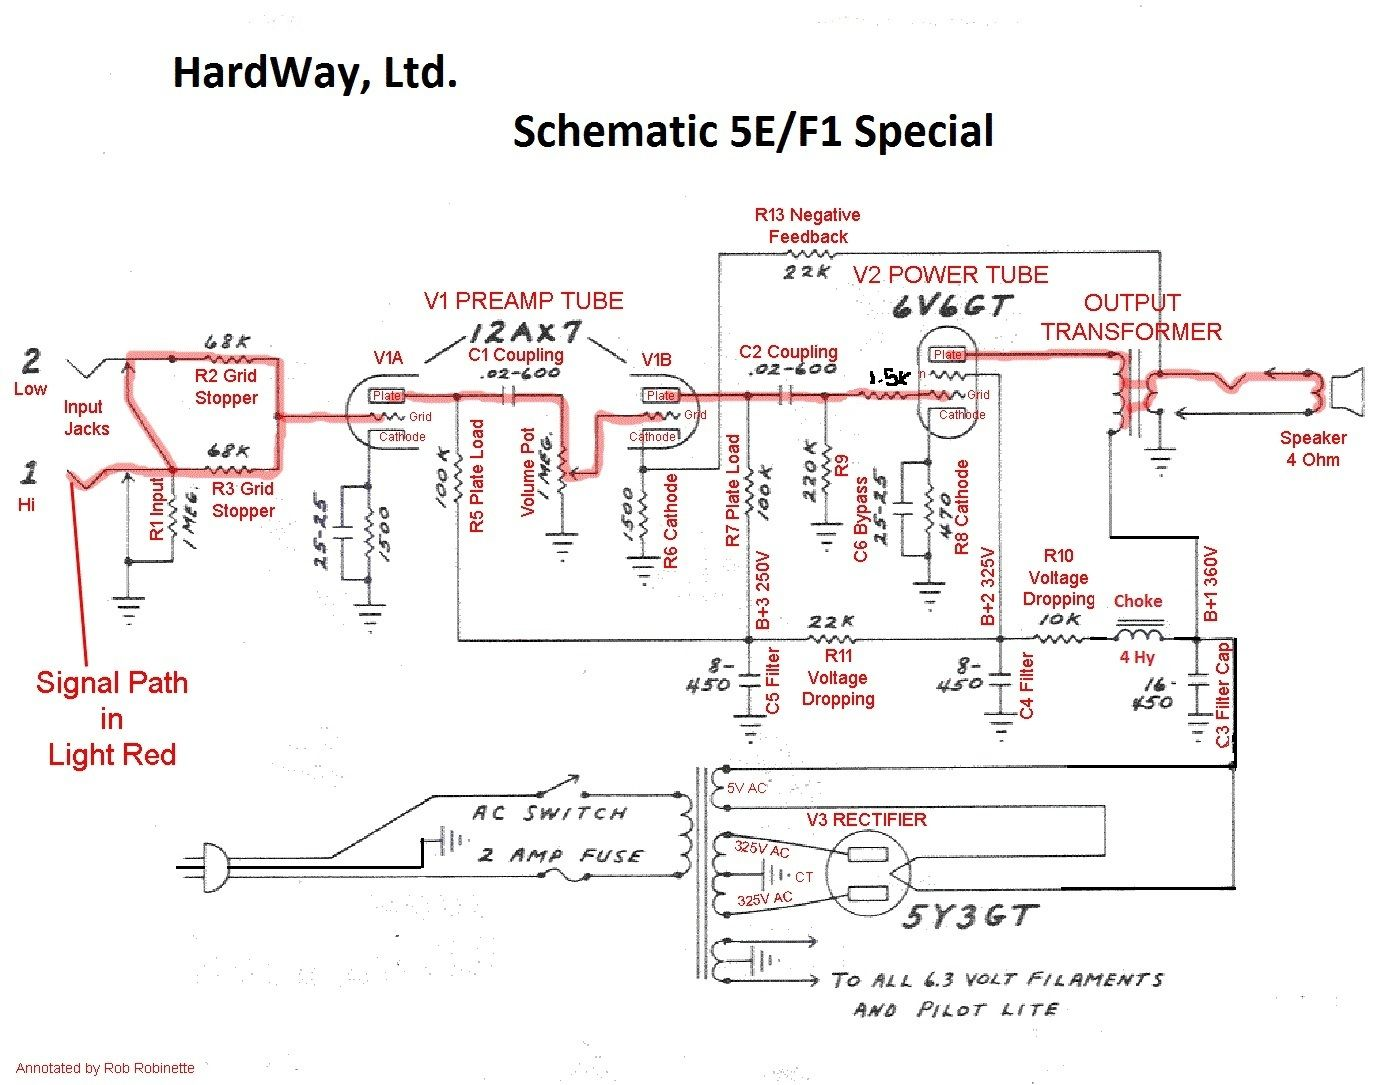 small resolution of this is the schematic for the 5e f1 special amp